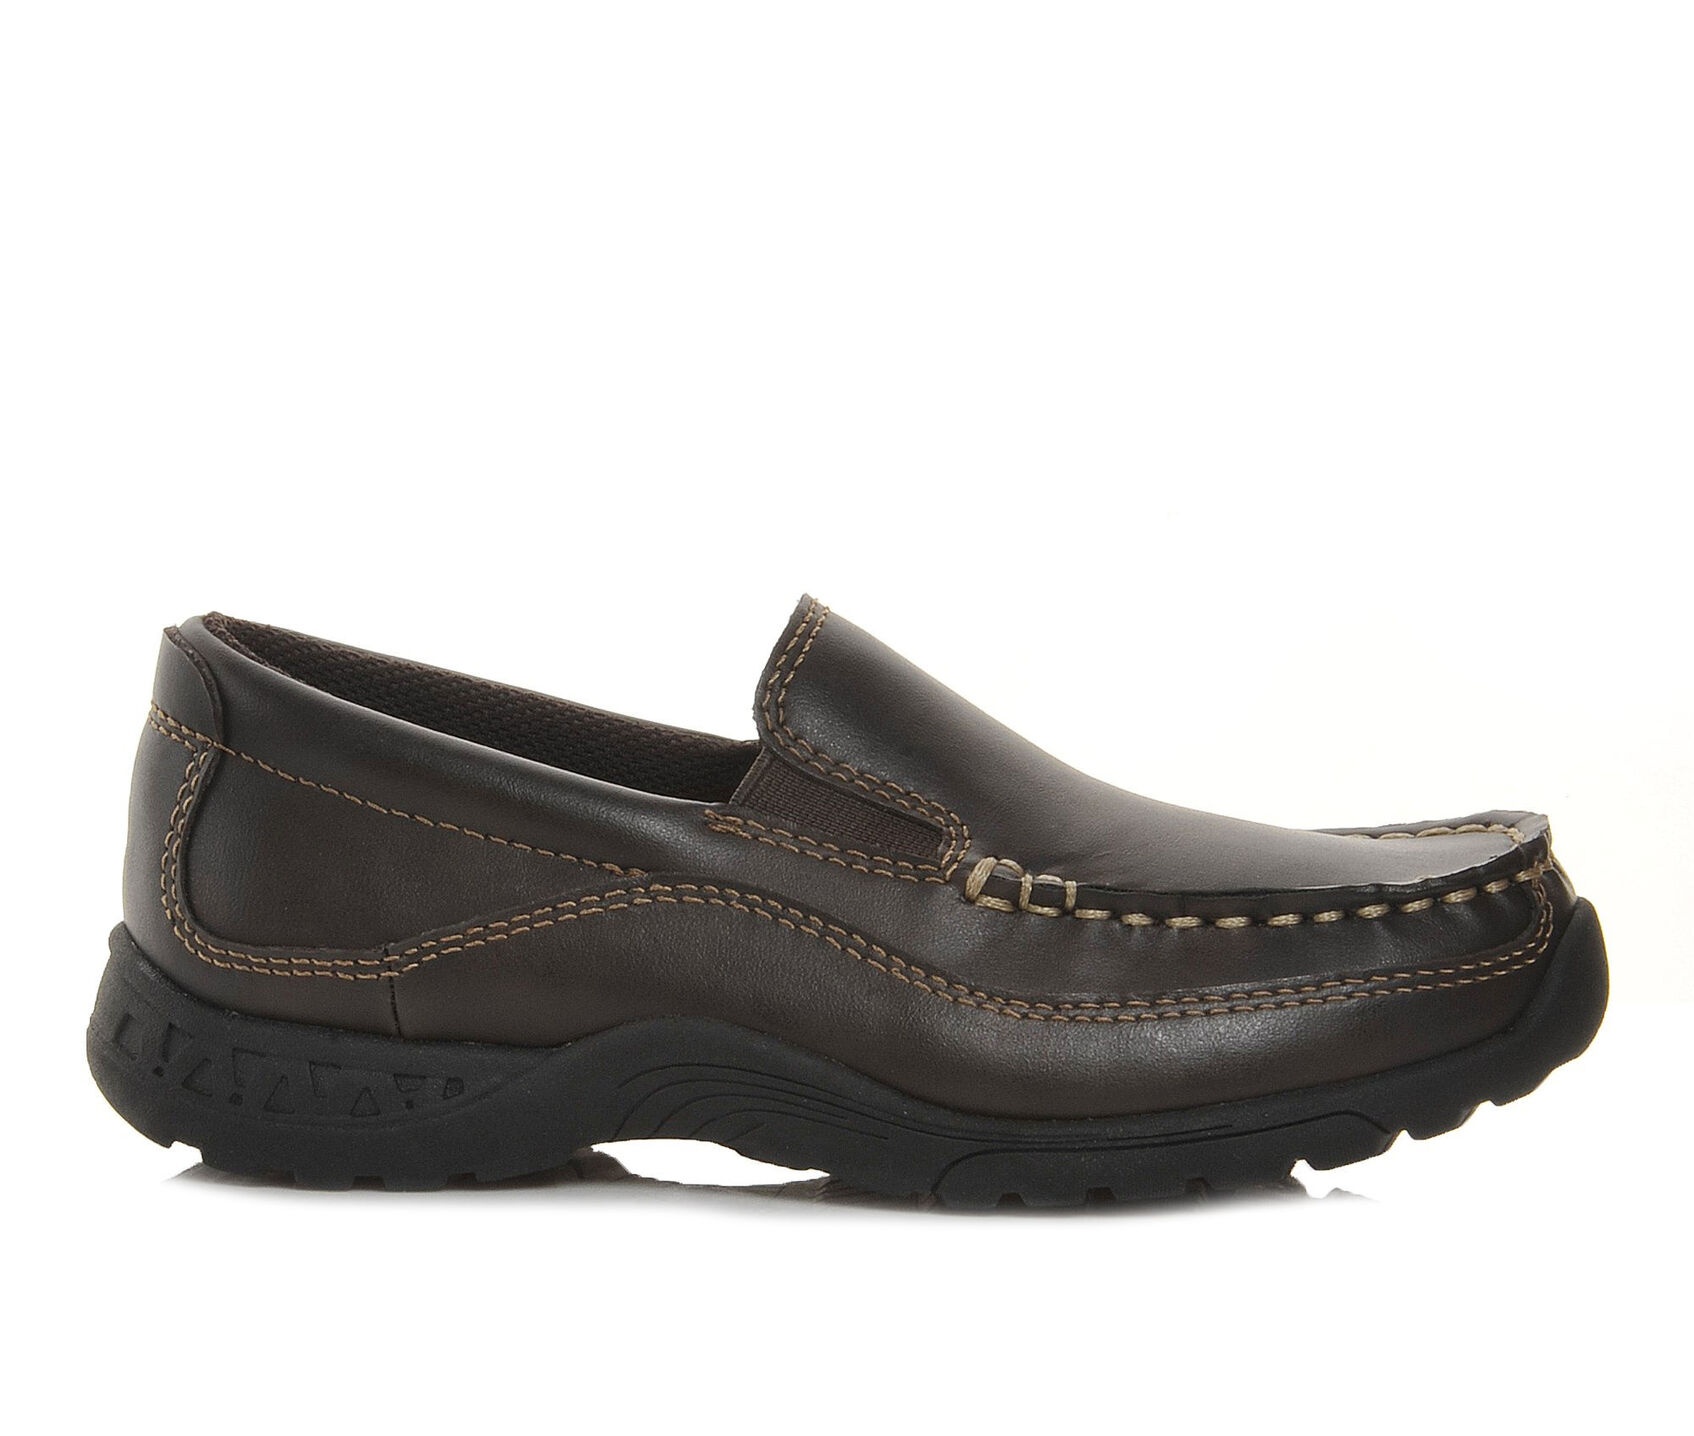 Boys Madison Ave Chuck 11 7 Casual Shoes